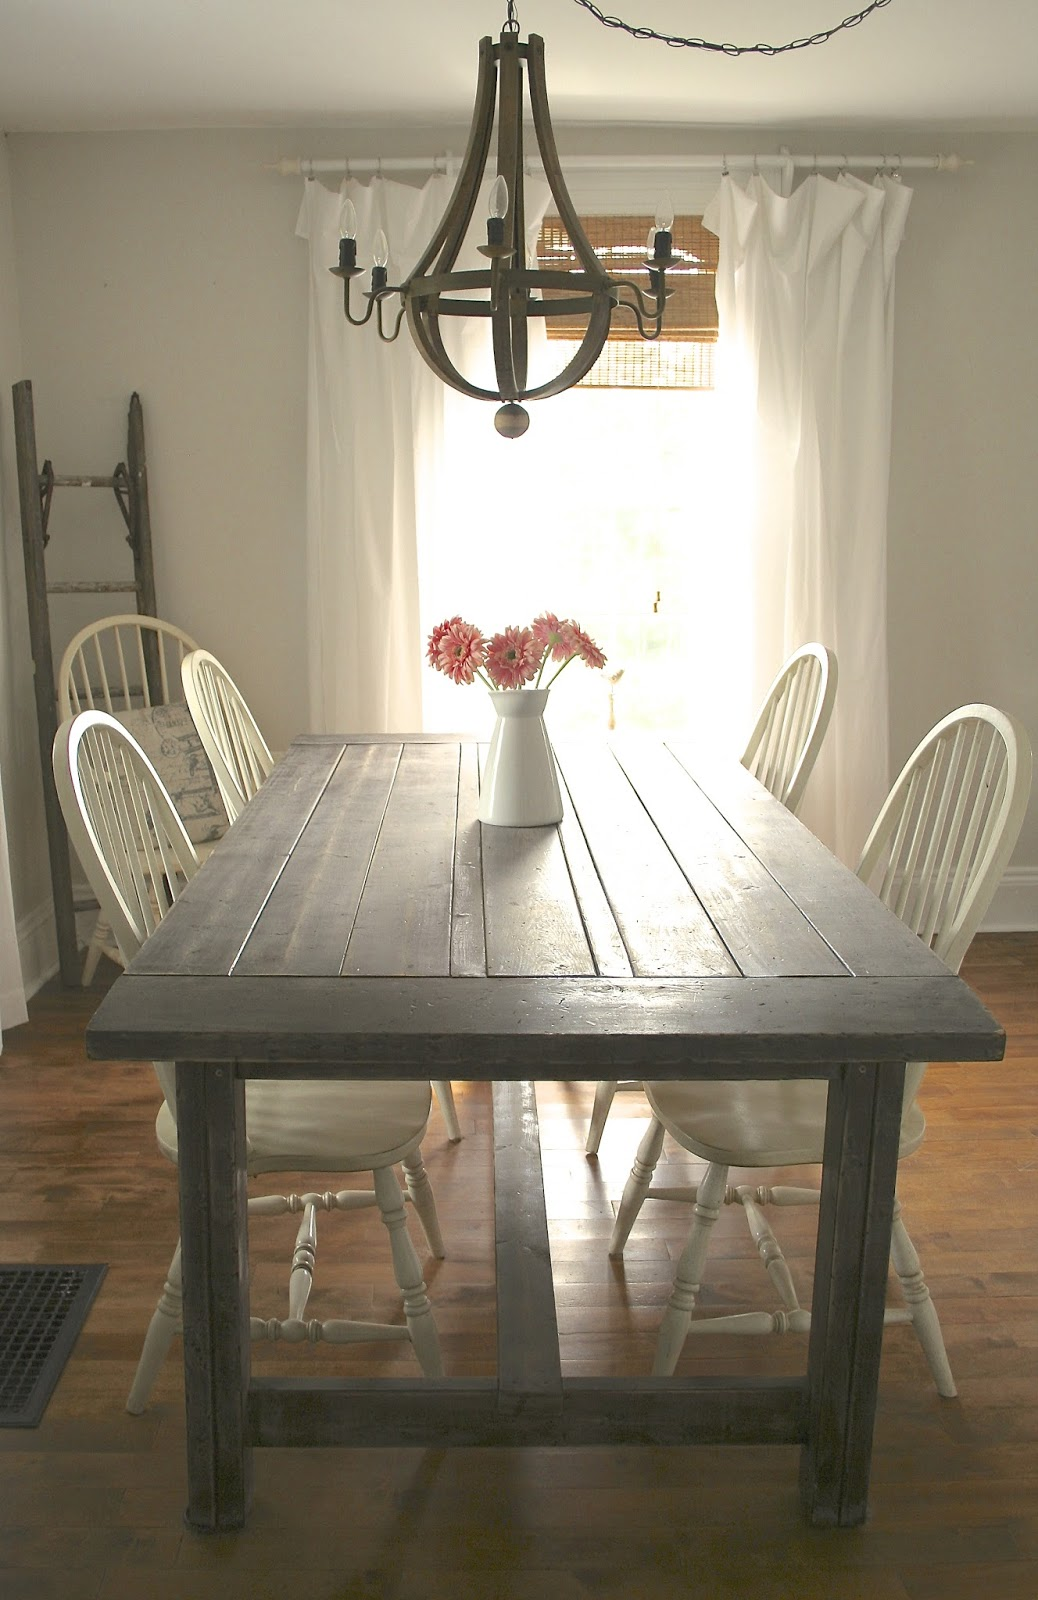 Diy dining table makeover - Diy Rustic Farmhouse Table Makeover Nest Of Bliss